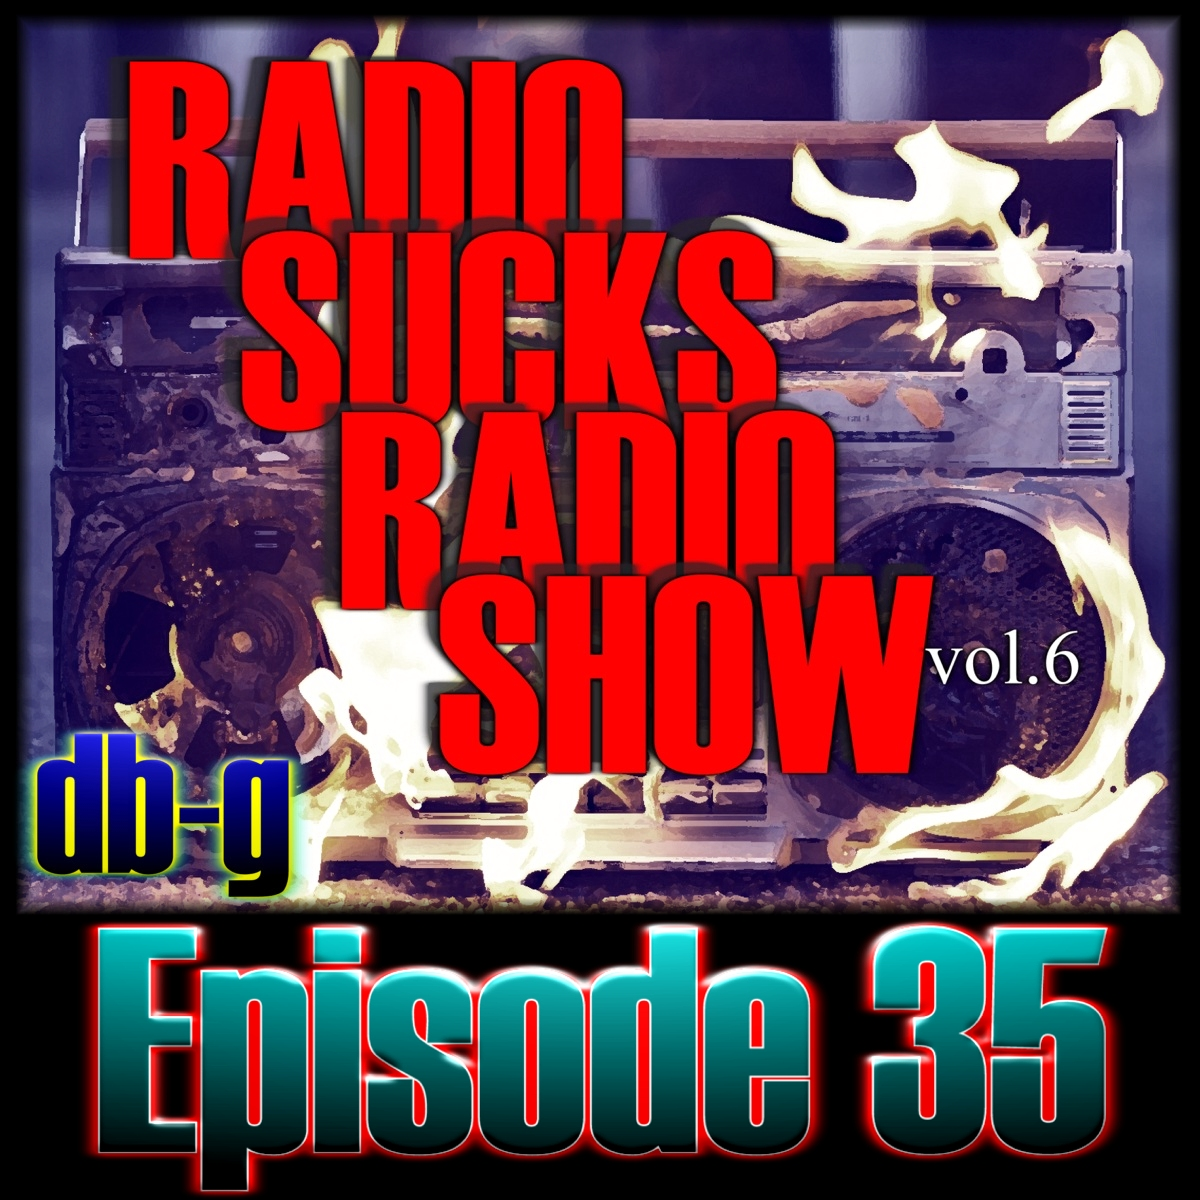 Episode 35 - Radio Sucks Radio Show vol.6